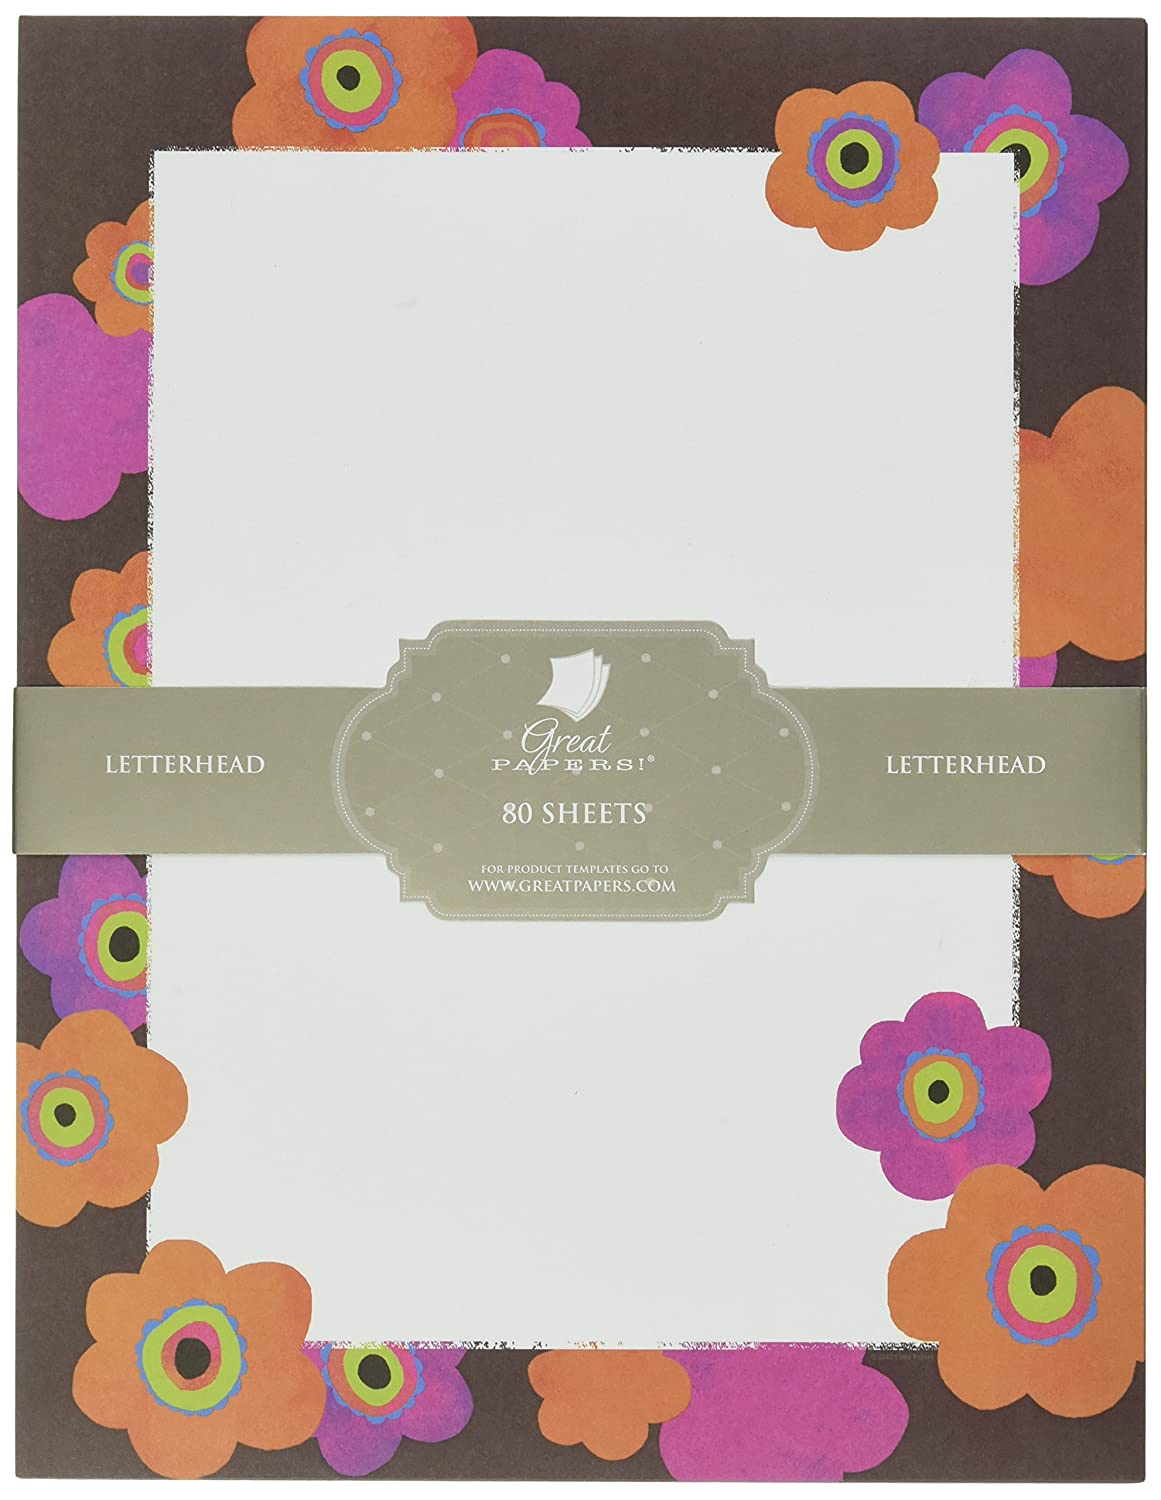 Great Papers 8.5x11 2014333 Bright Floral Letterhead 80 Count